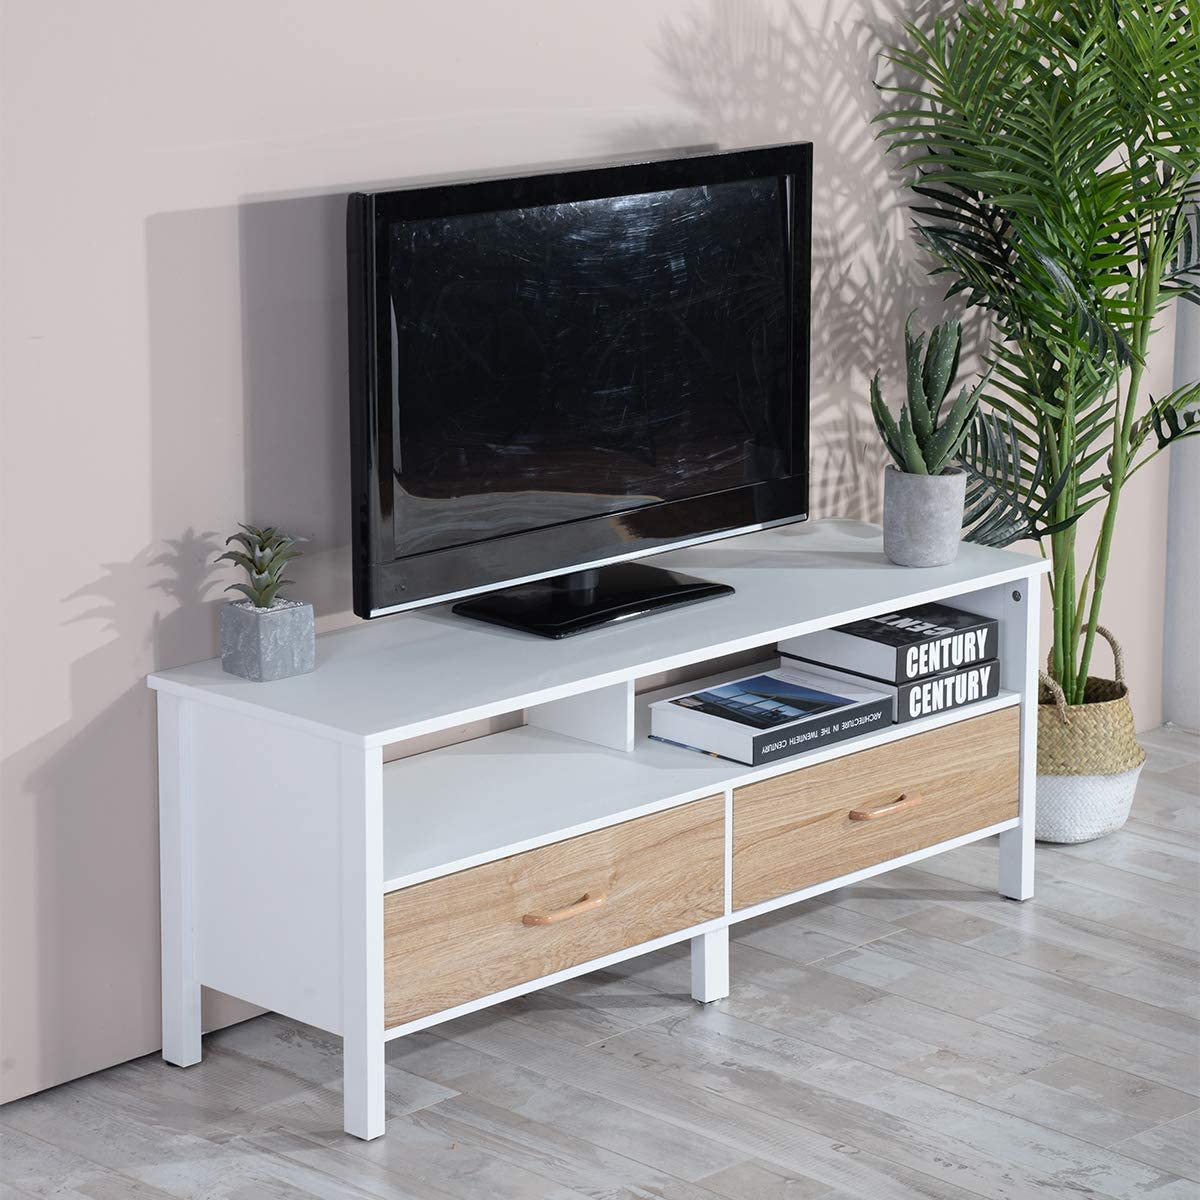 White TV Stand White Drawers Wall Cabinet TV Console with Two Lockers for 43 Inch, 46 Inch, 50 Inch TV